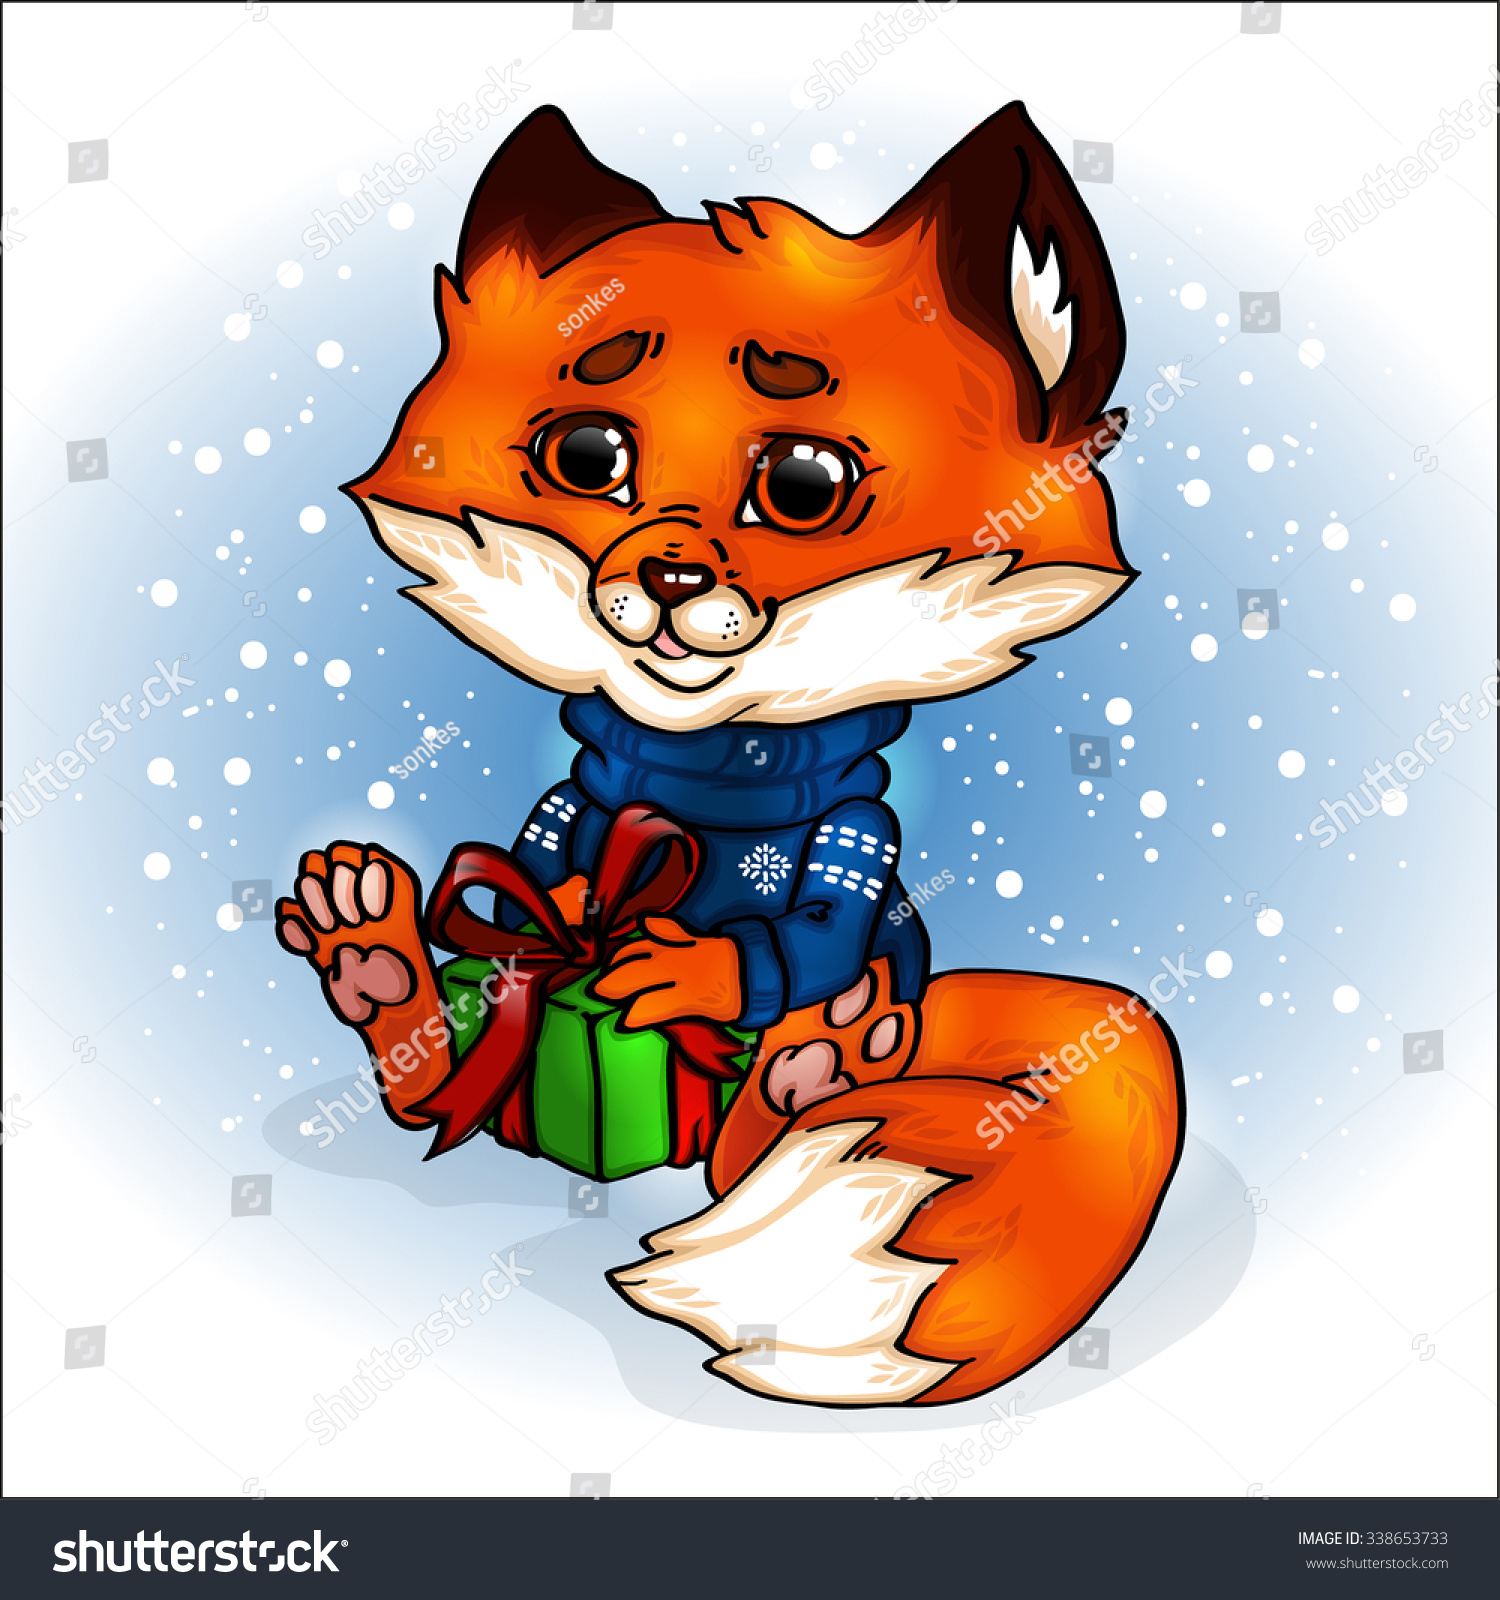 Fox Cartoon Cute New Year Christmas Stock Vector Royalty Free 338653733